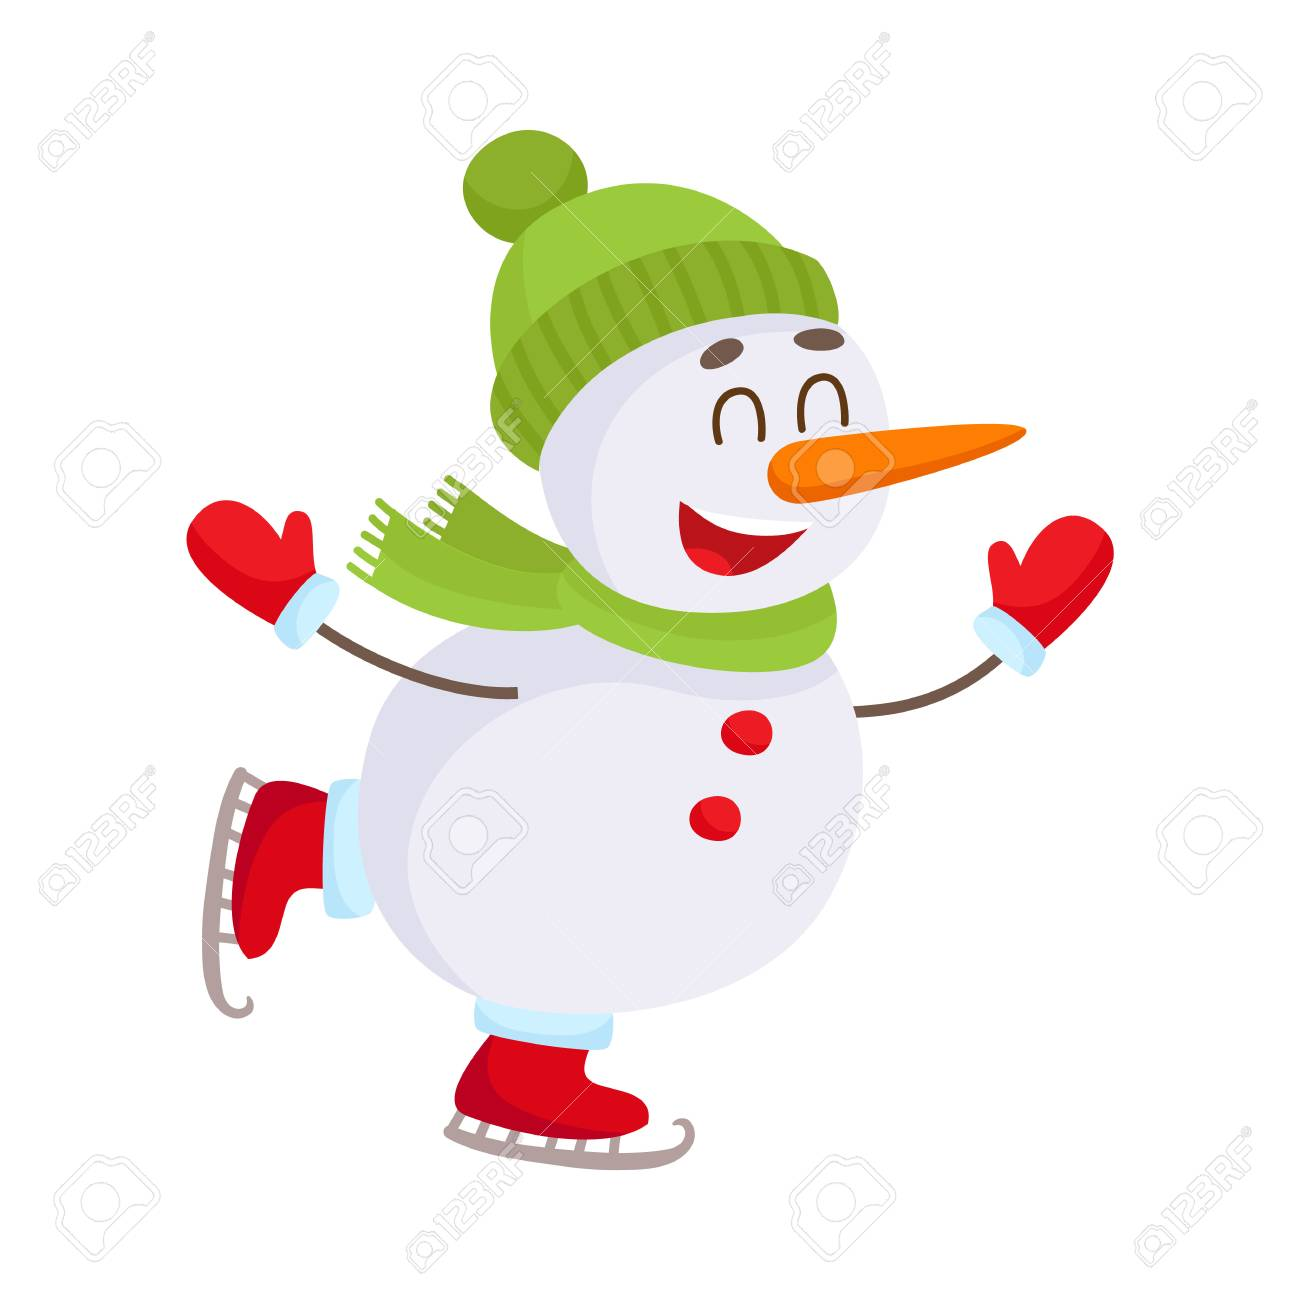 f333b95d08522 Cute And Funny Little Snowman Ice Skating Happily